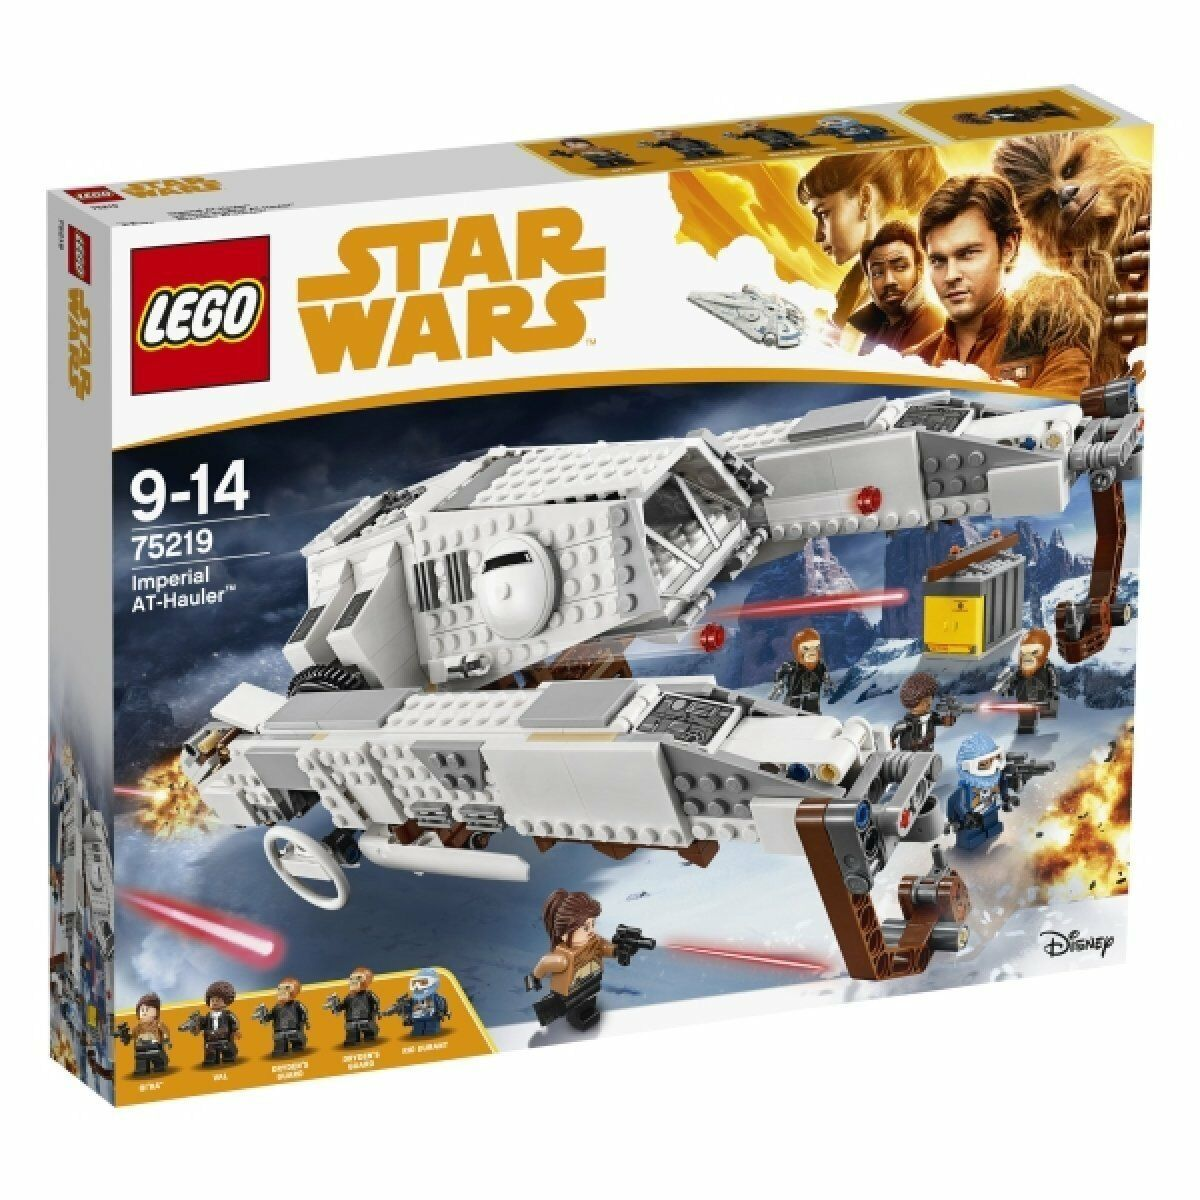 Lego 75219 Star Wars Imperial AT-HAULER neuf neuf dans sa  boîte  magasin d'offre